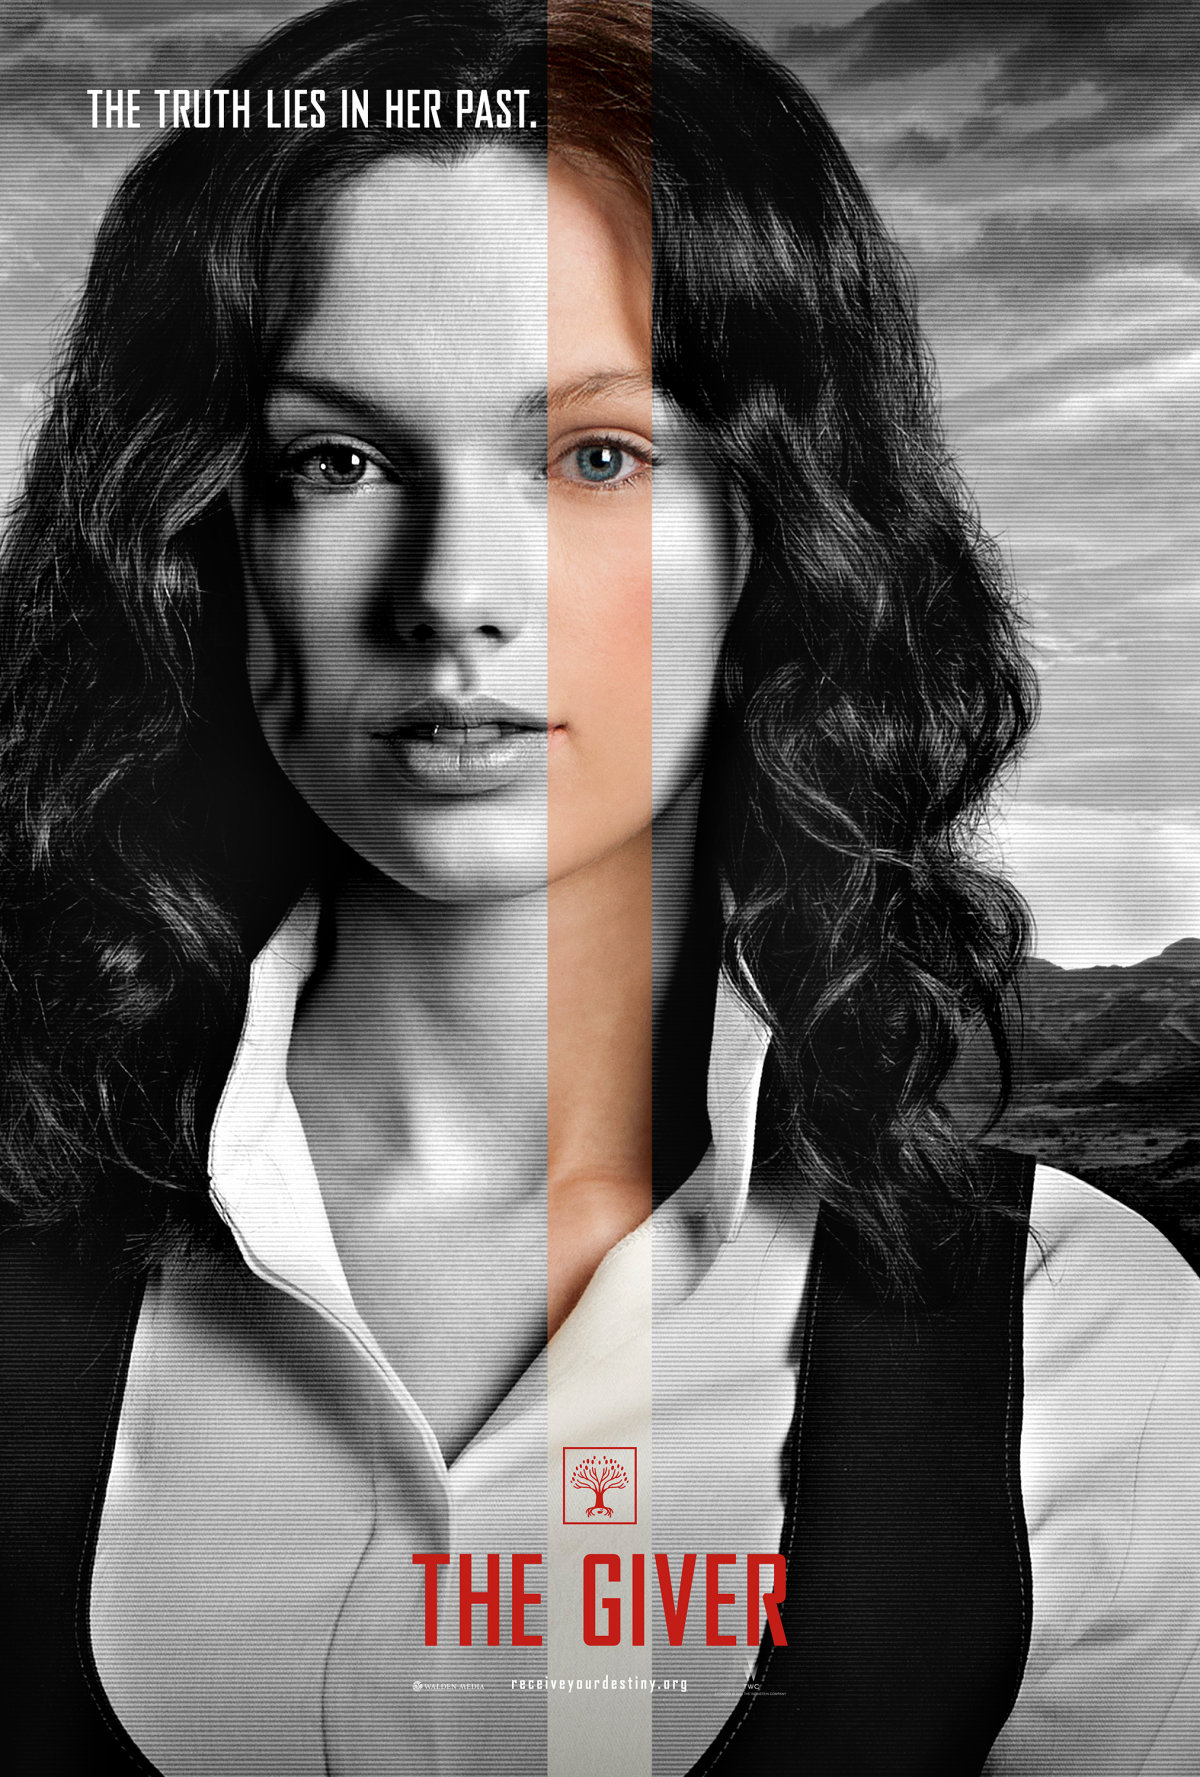 Taylor Swift goes brunette and makeup-free in movie poster for 'The Giver'